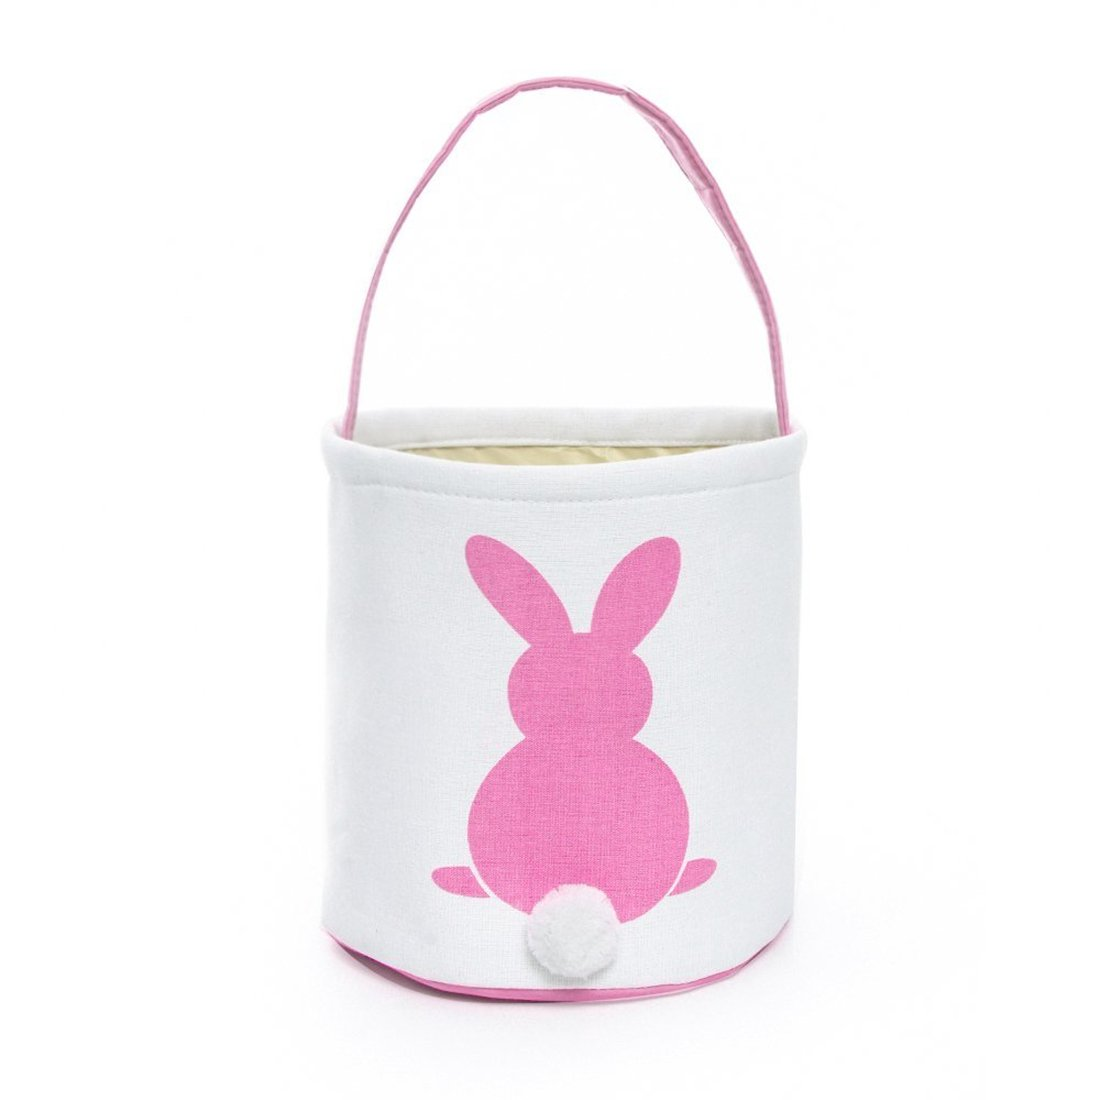 GWELL 4 PCS Foldable Gift Basket Bucket for Kids Egg Hunt Easter Bunny Basket Goodies Canvas Bag with Bunny Tail Pompom Candies DIY Gifts